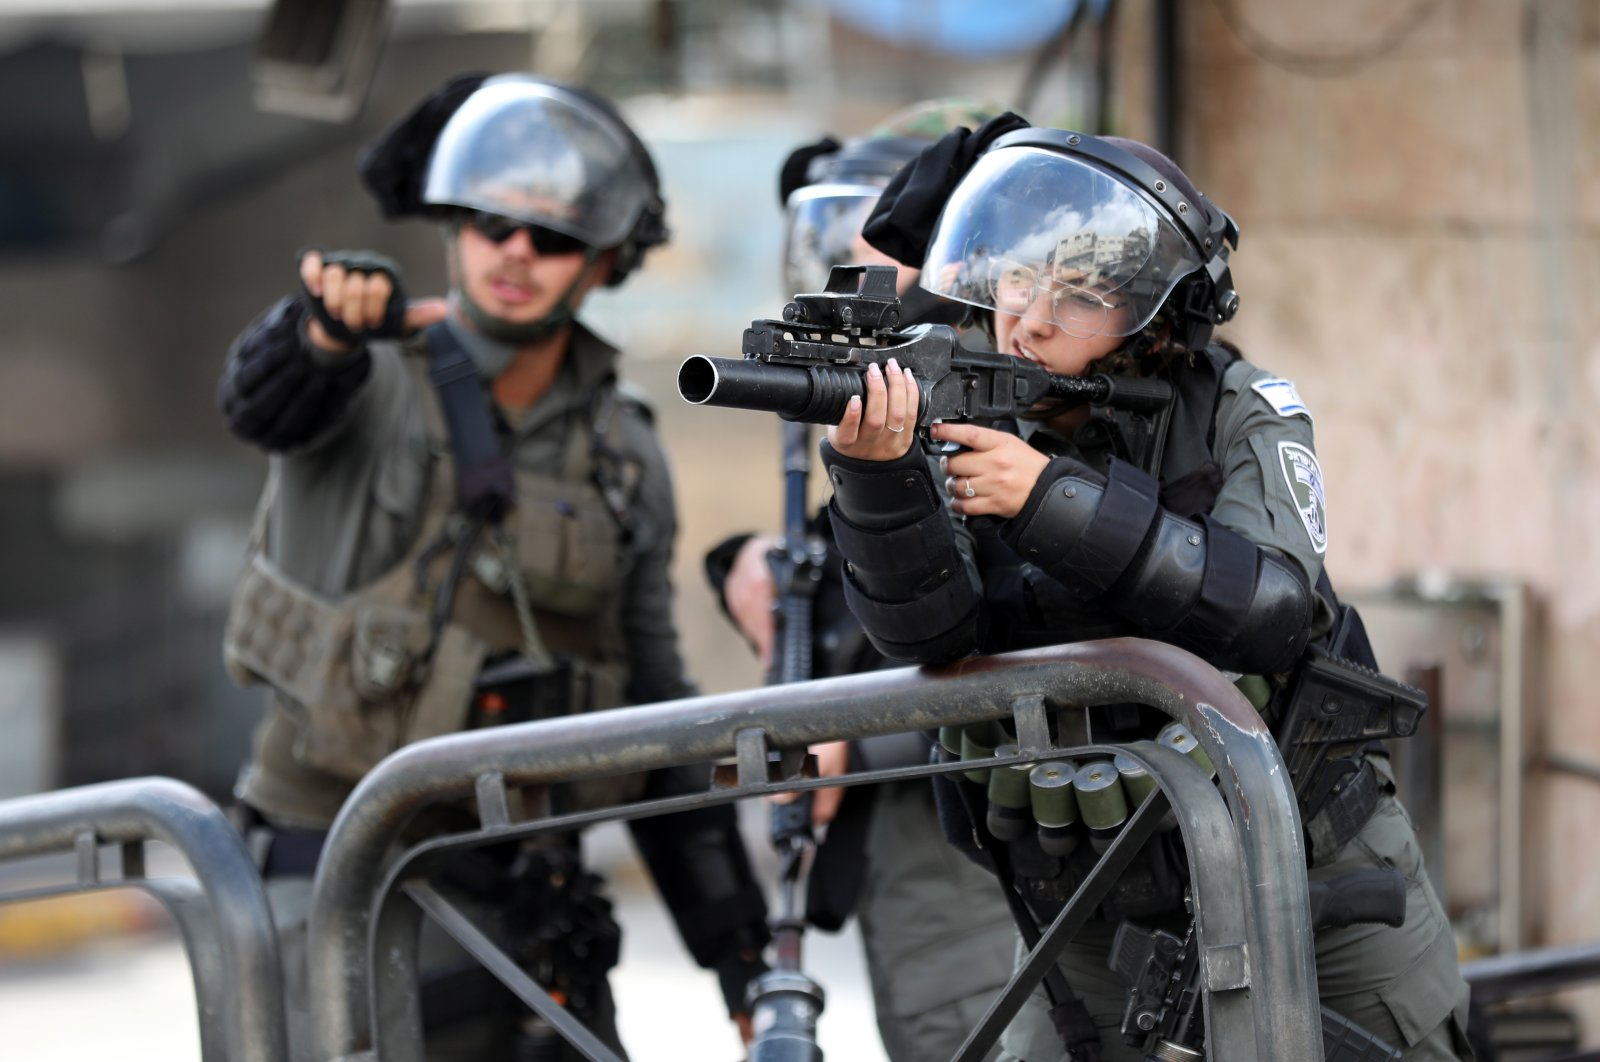 Israeli troops take aim during a Palestinian protest in the city center of Hebron, occupied West Bank, Sept. 10, 2021. (EPA Photo)